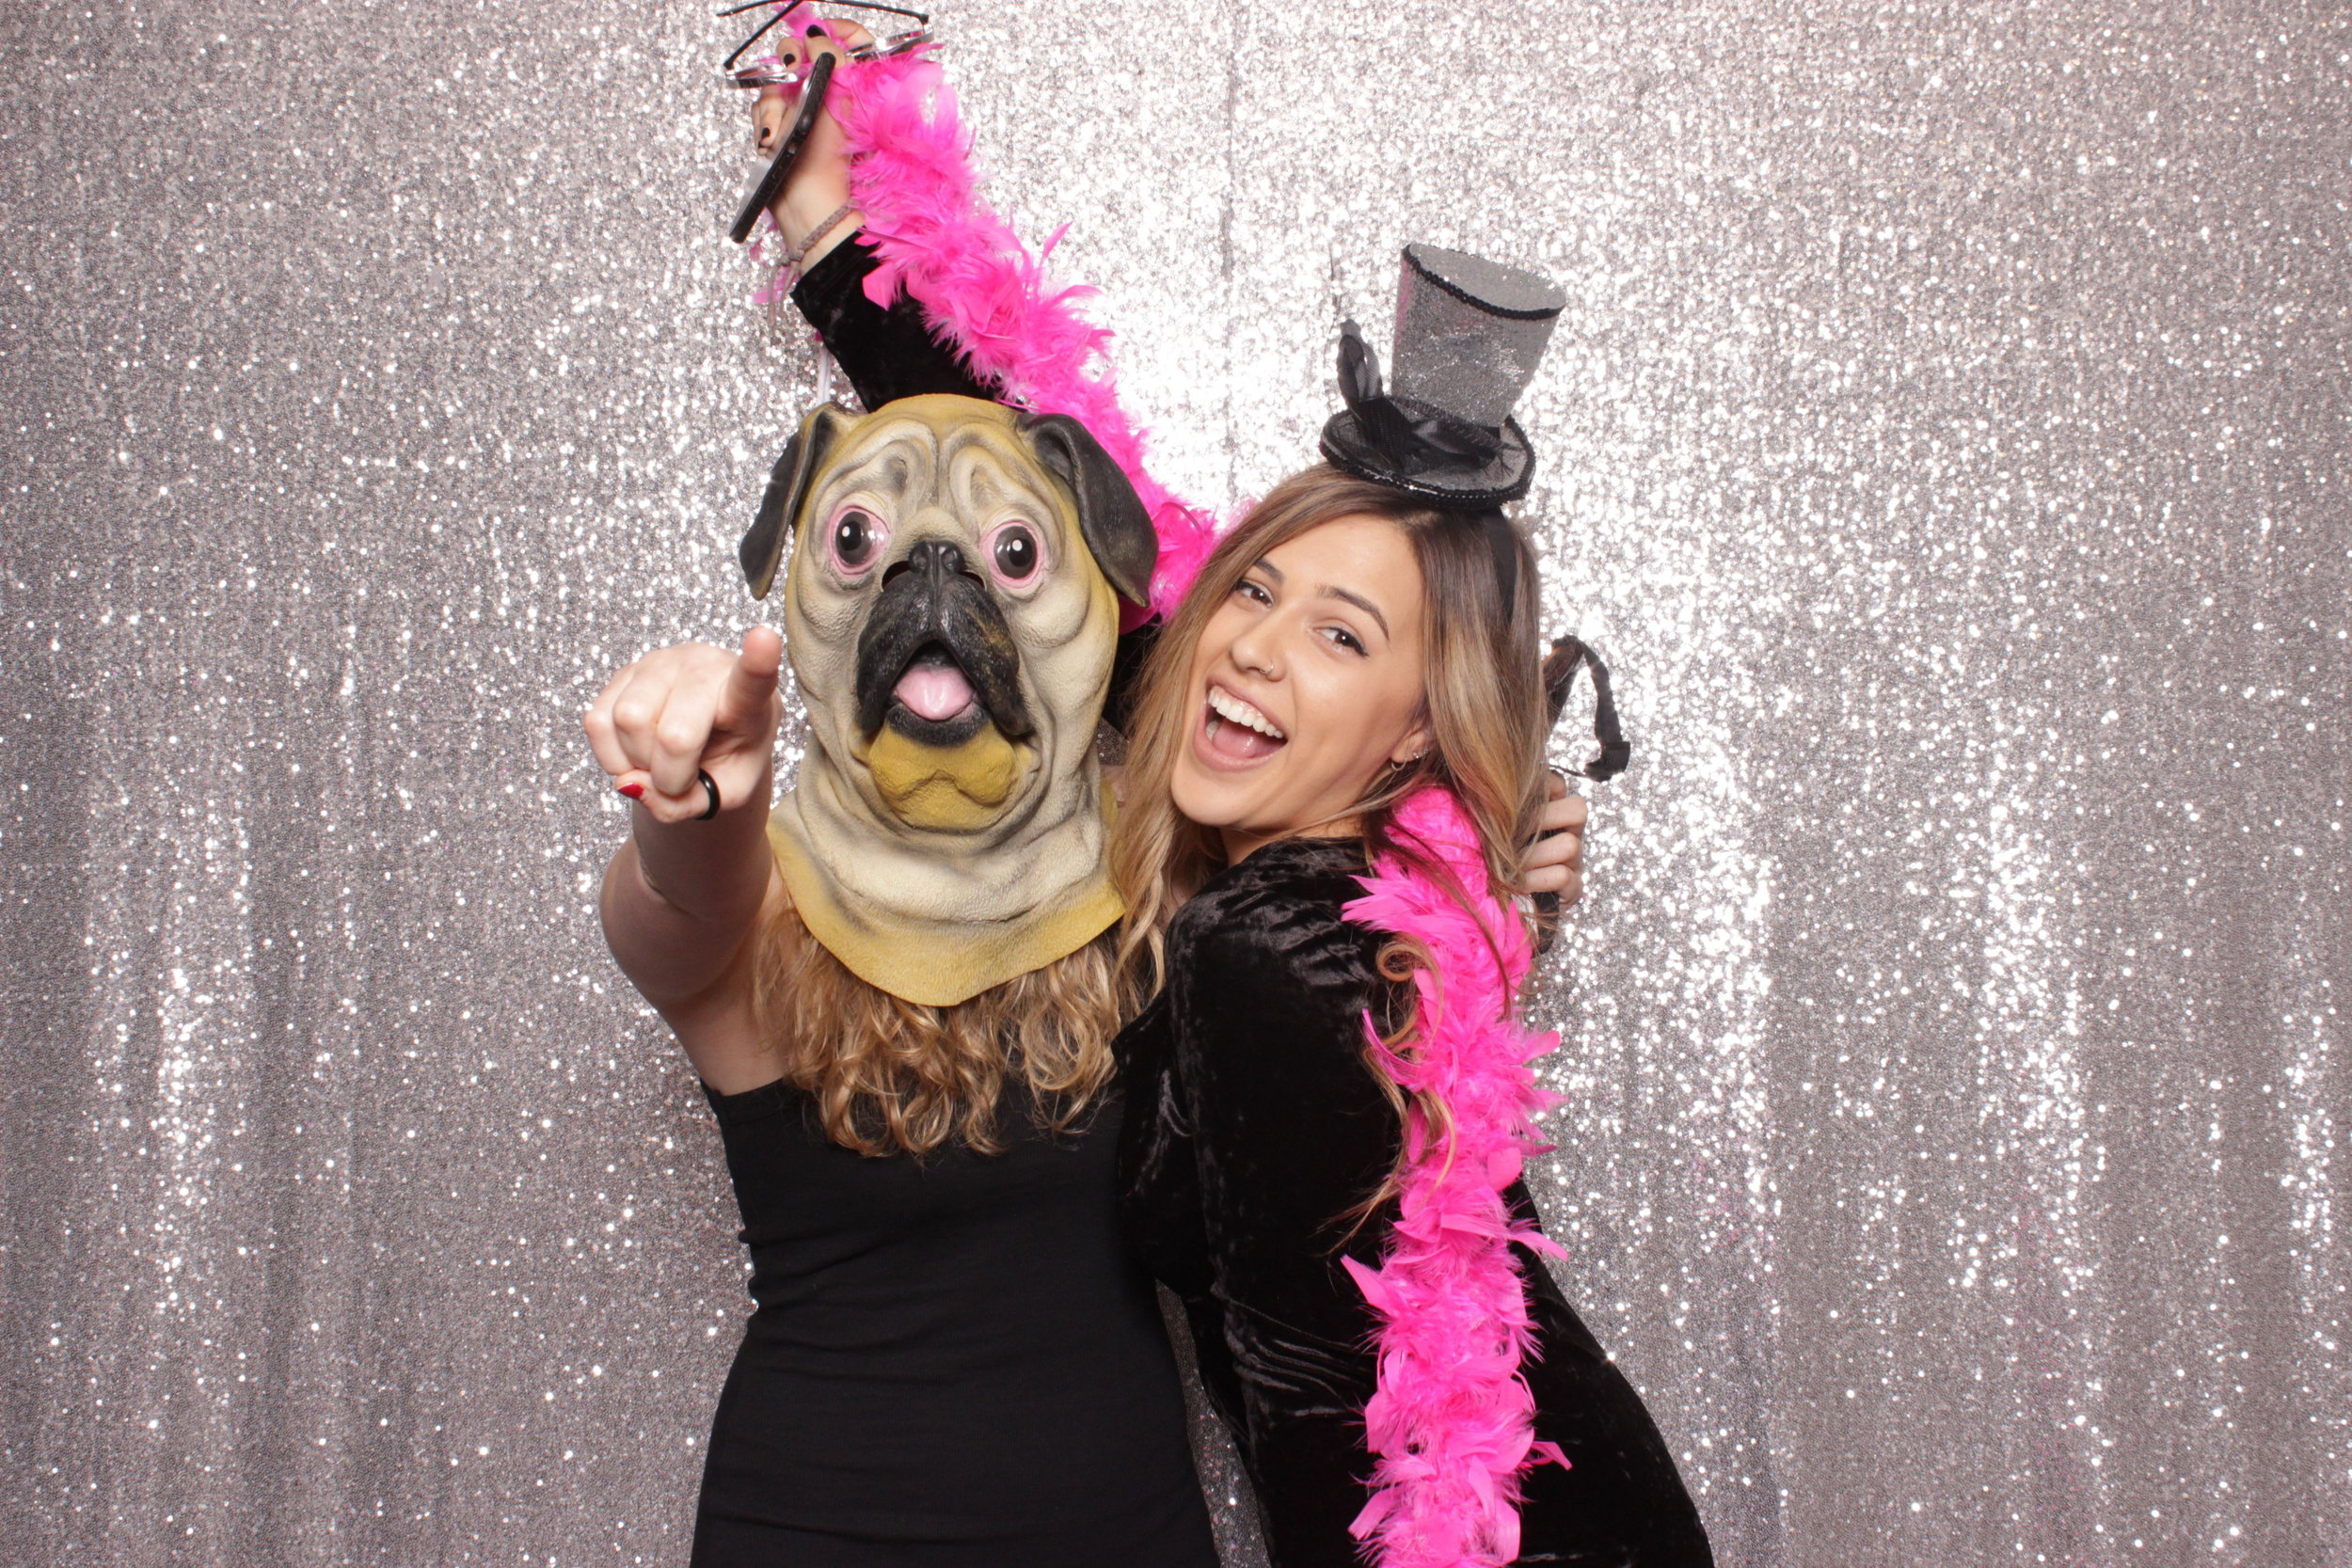 Chico-photo-booth-rental-with-masks